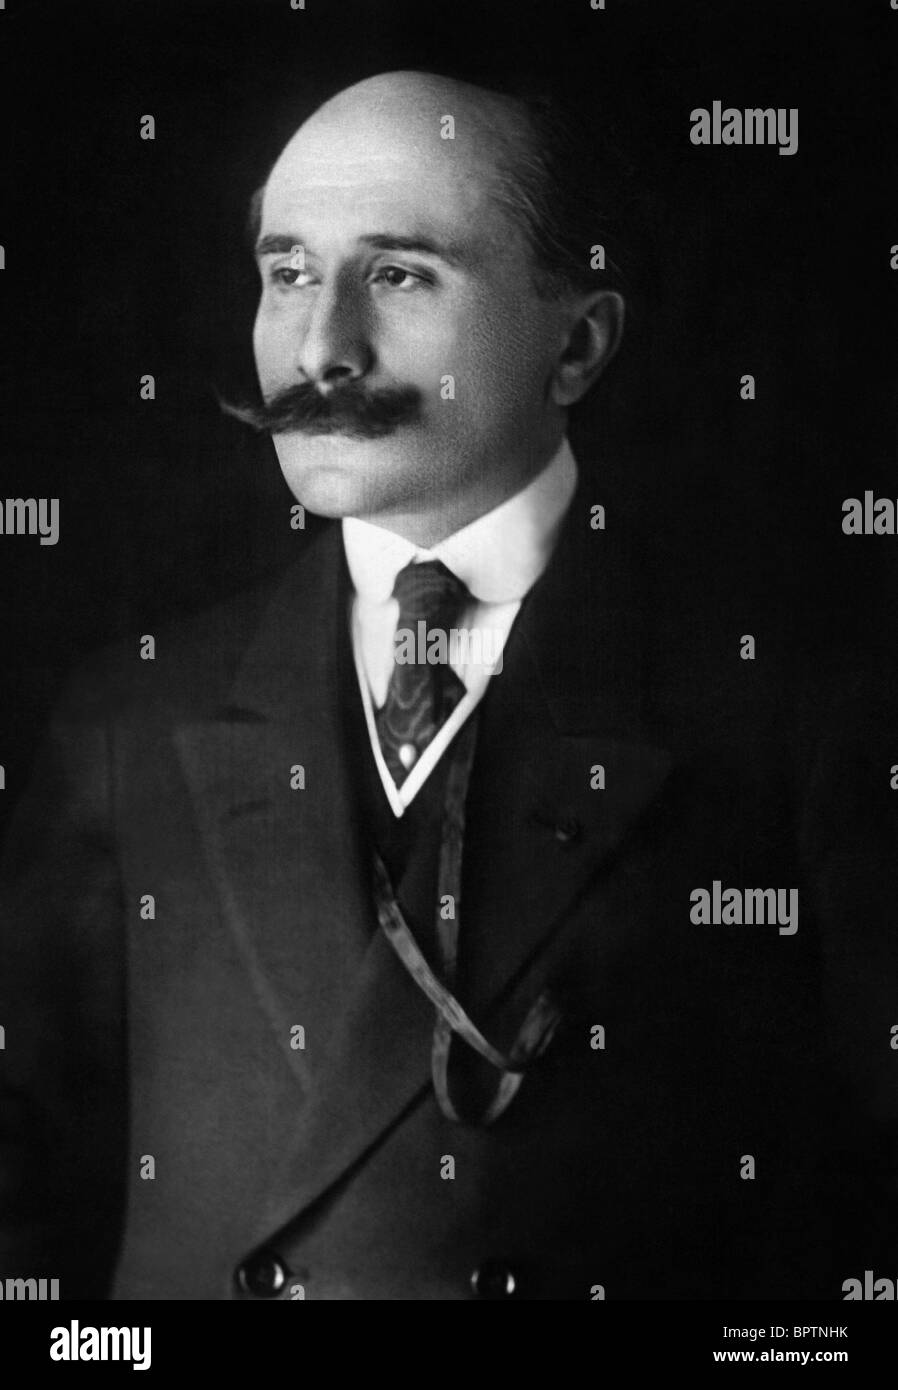 EDMOND ROSTAND WRITER AUTHOR (1918) - Stock Image